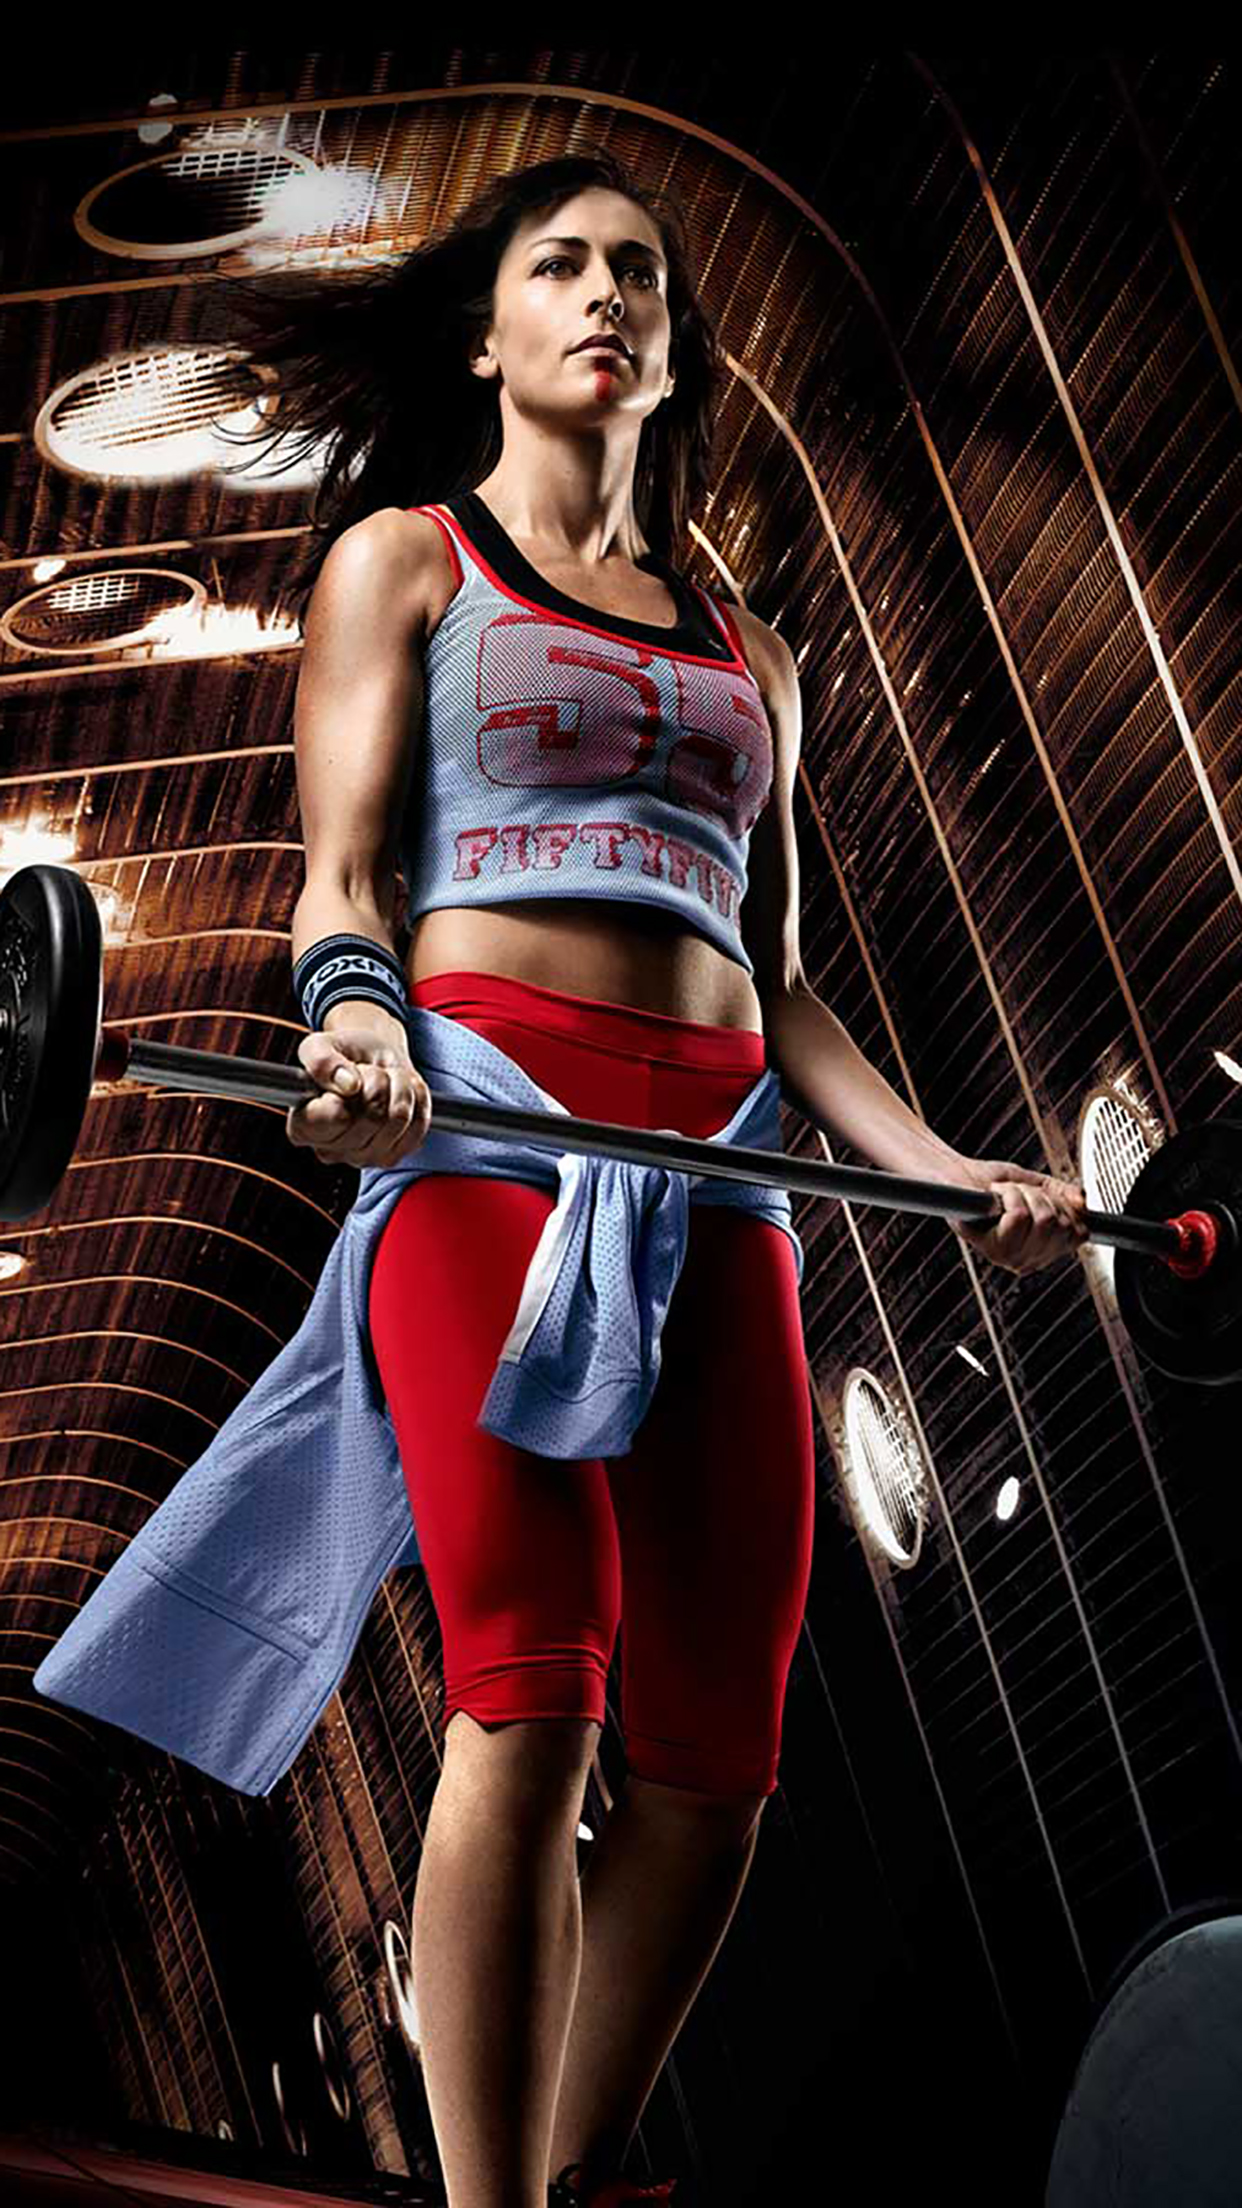 body training methods, a picture of a woman training